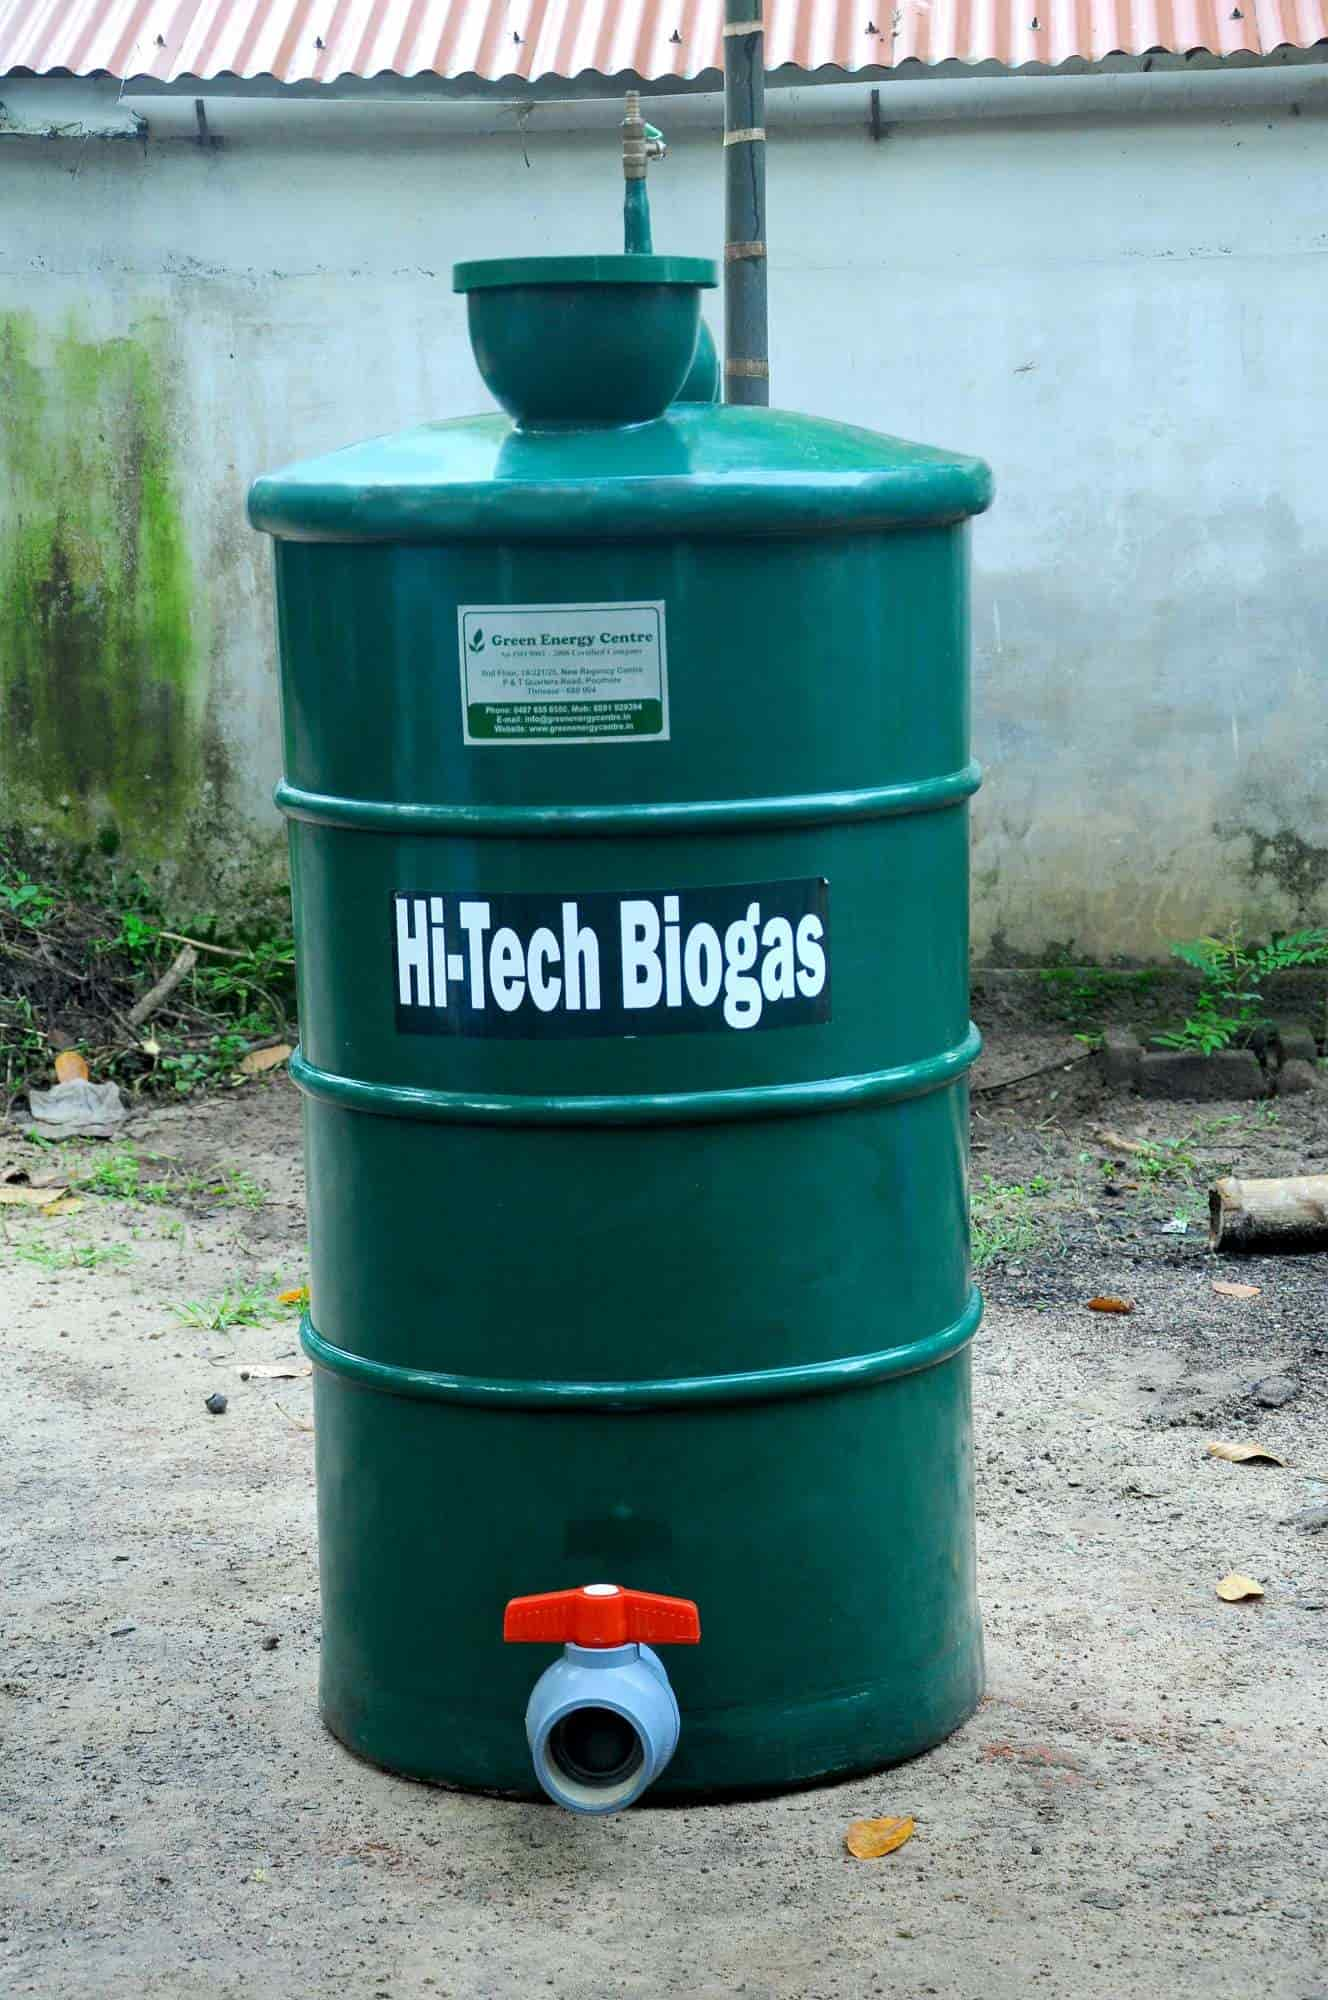 Green Energy Centre Photos Poothole Thrissur Pictures Images General Biogas Plant Diagram Technology Hd Wallpapers Dealers